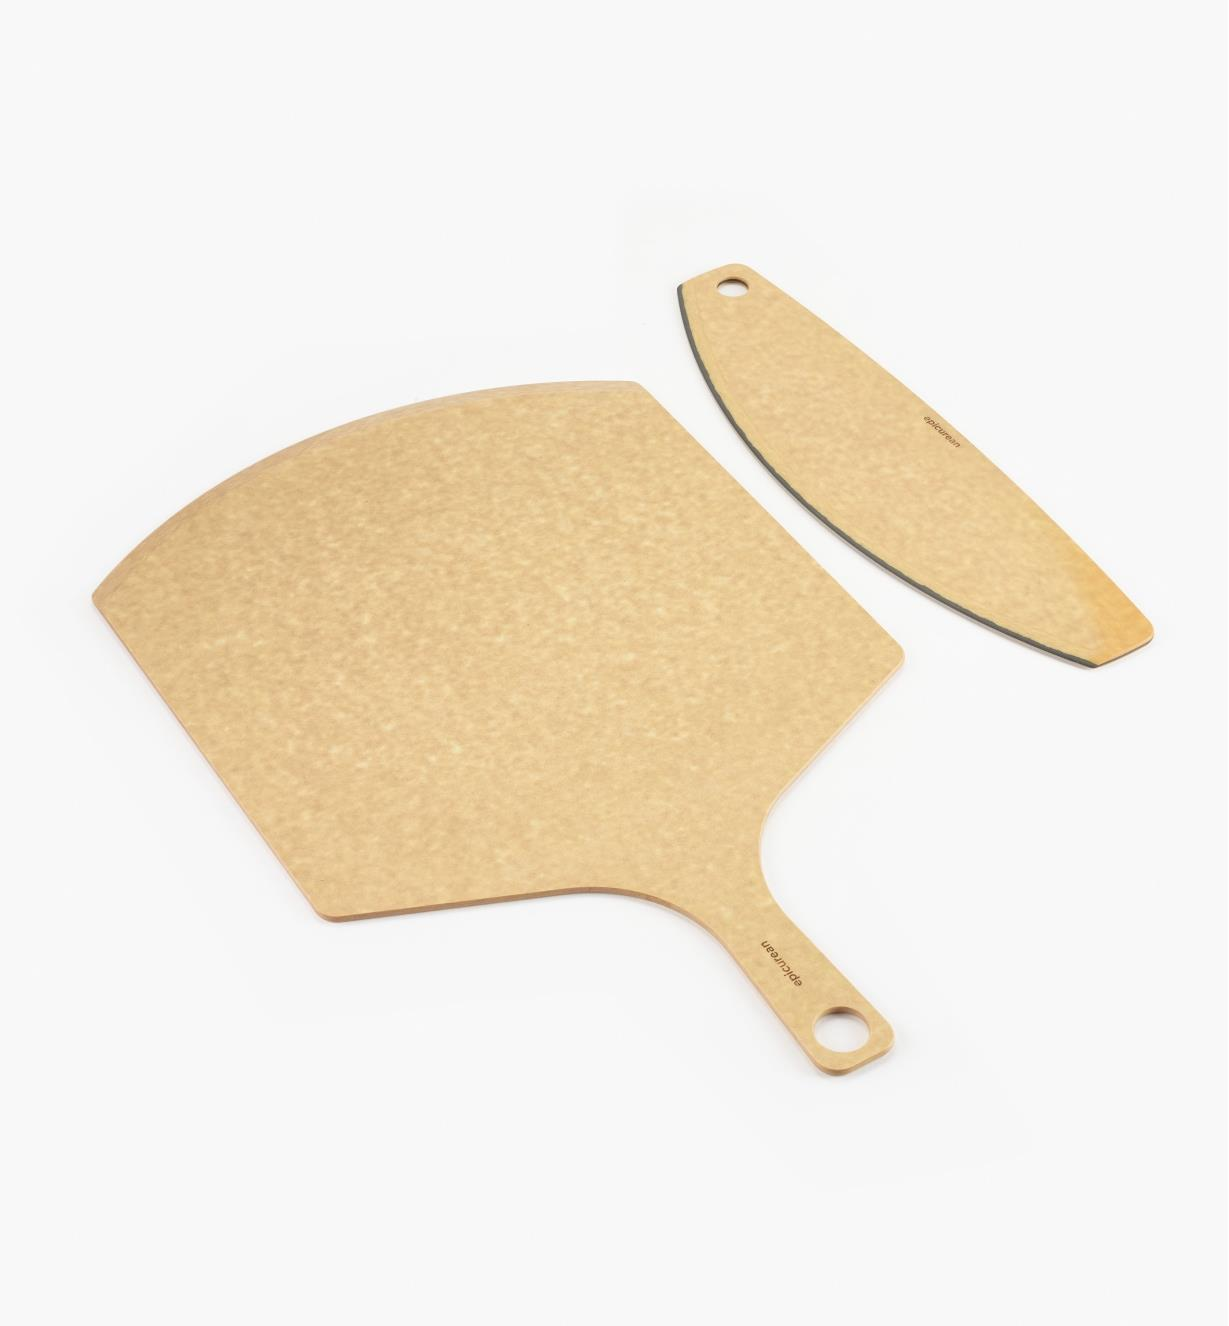 EV242 - Pizza Peel & Rocker Set